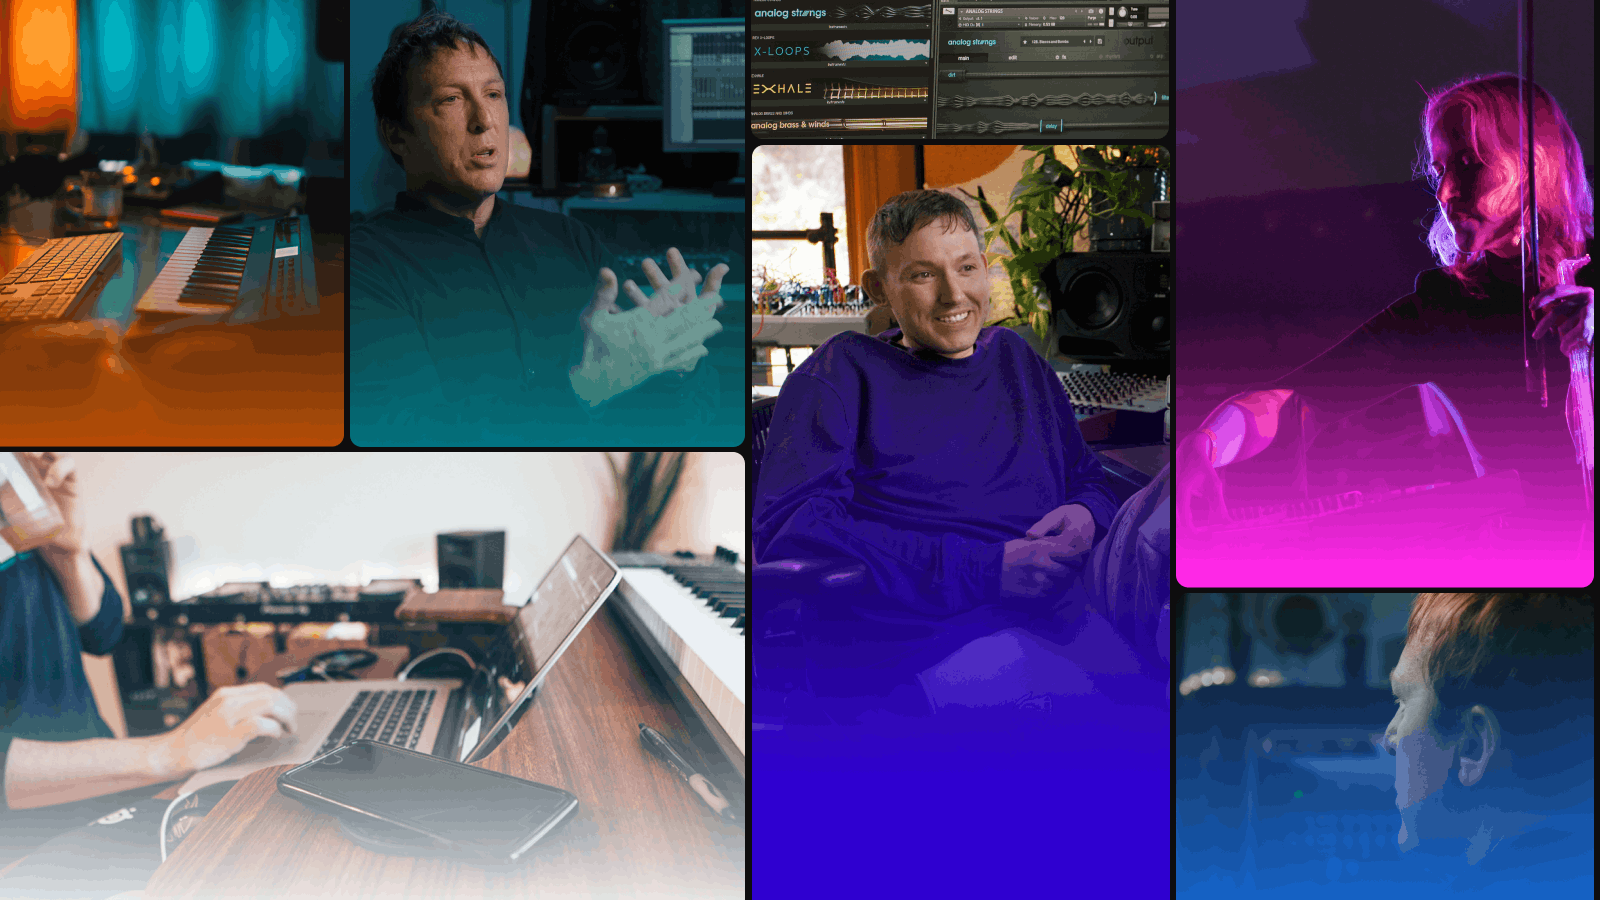 2020 year in review best blog post roundup from Output with Laura Escude, Hudson Mohawke, and other musicians